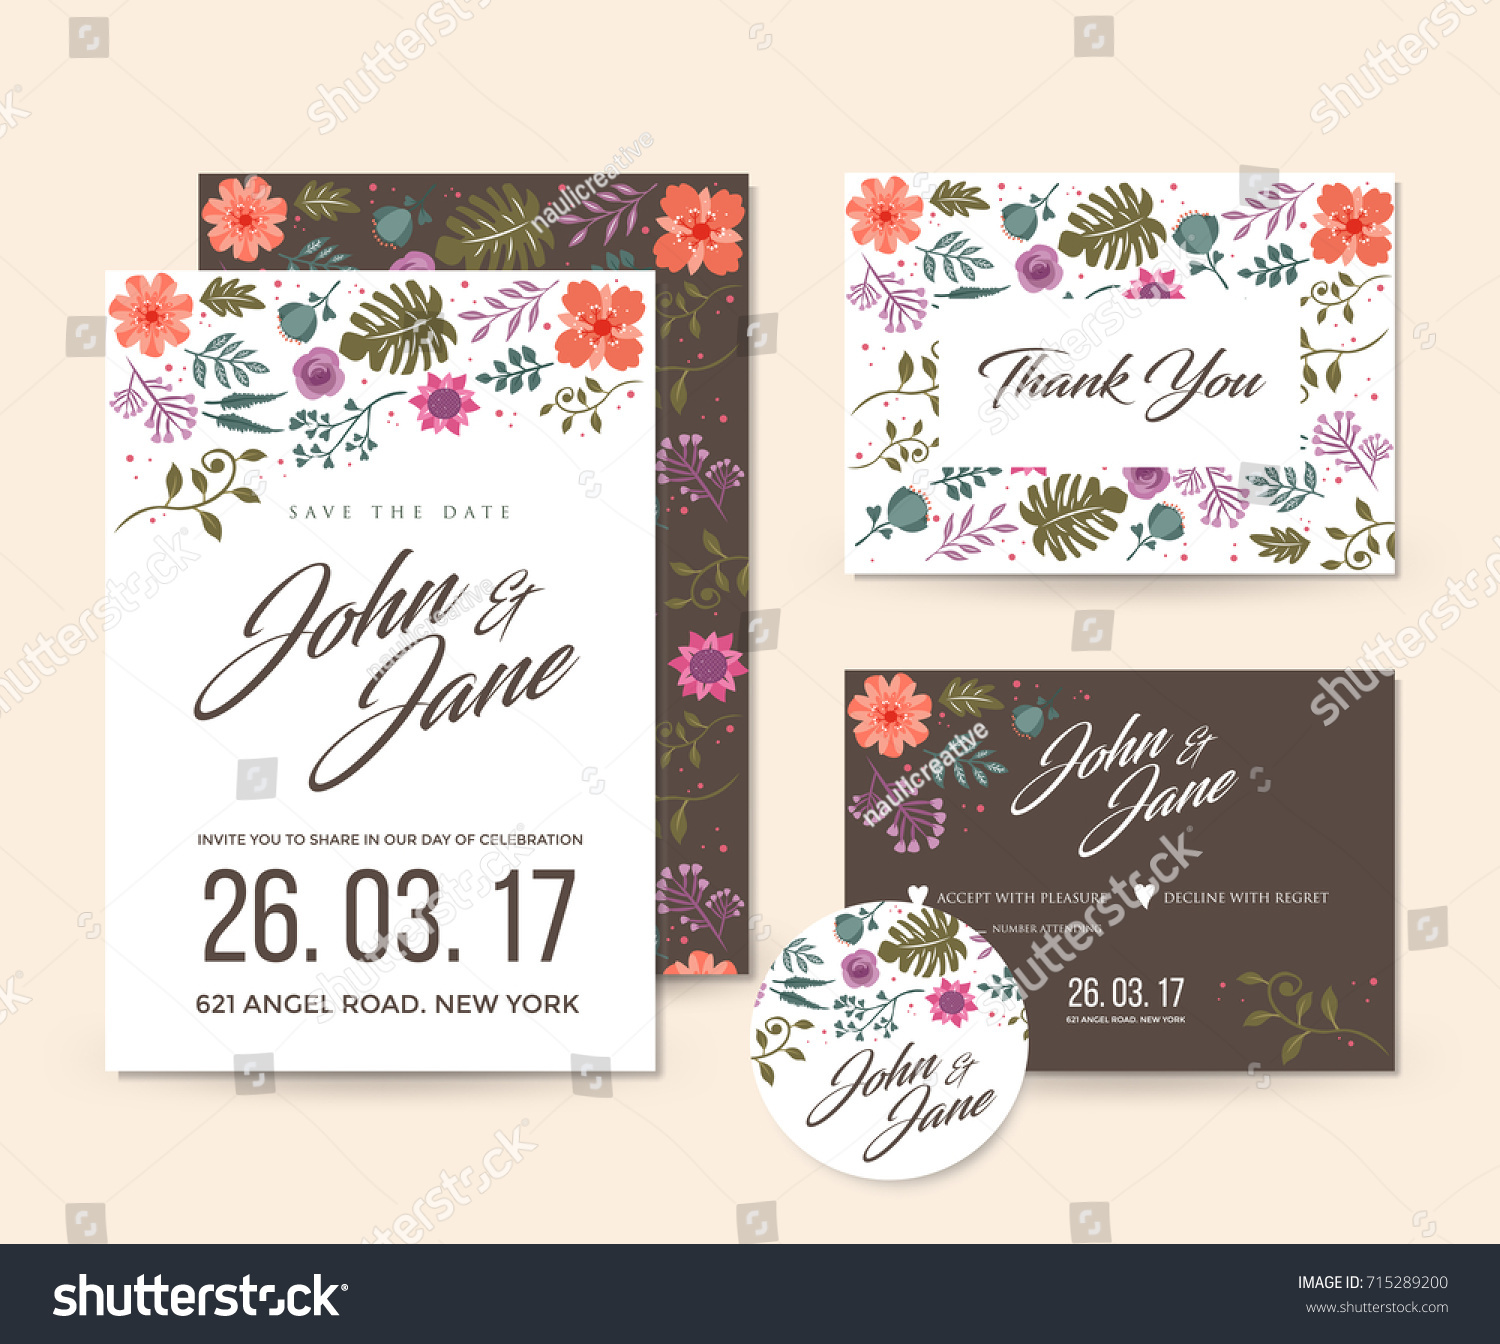 Modern Save Date Floral Wedding Invitation Stock Vector (Royalty Free)  715289200